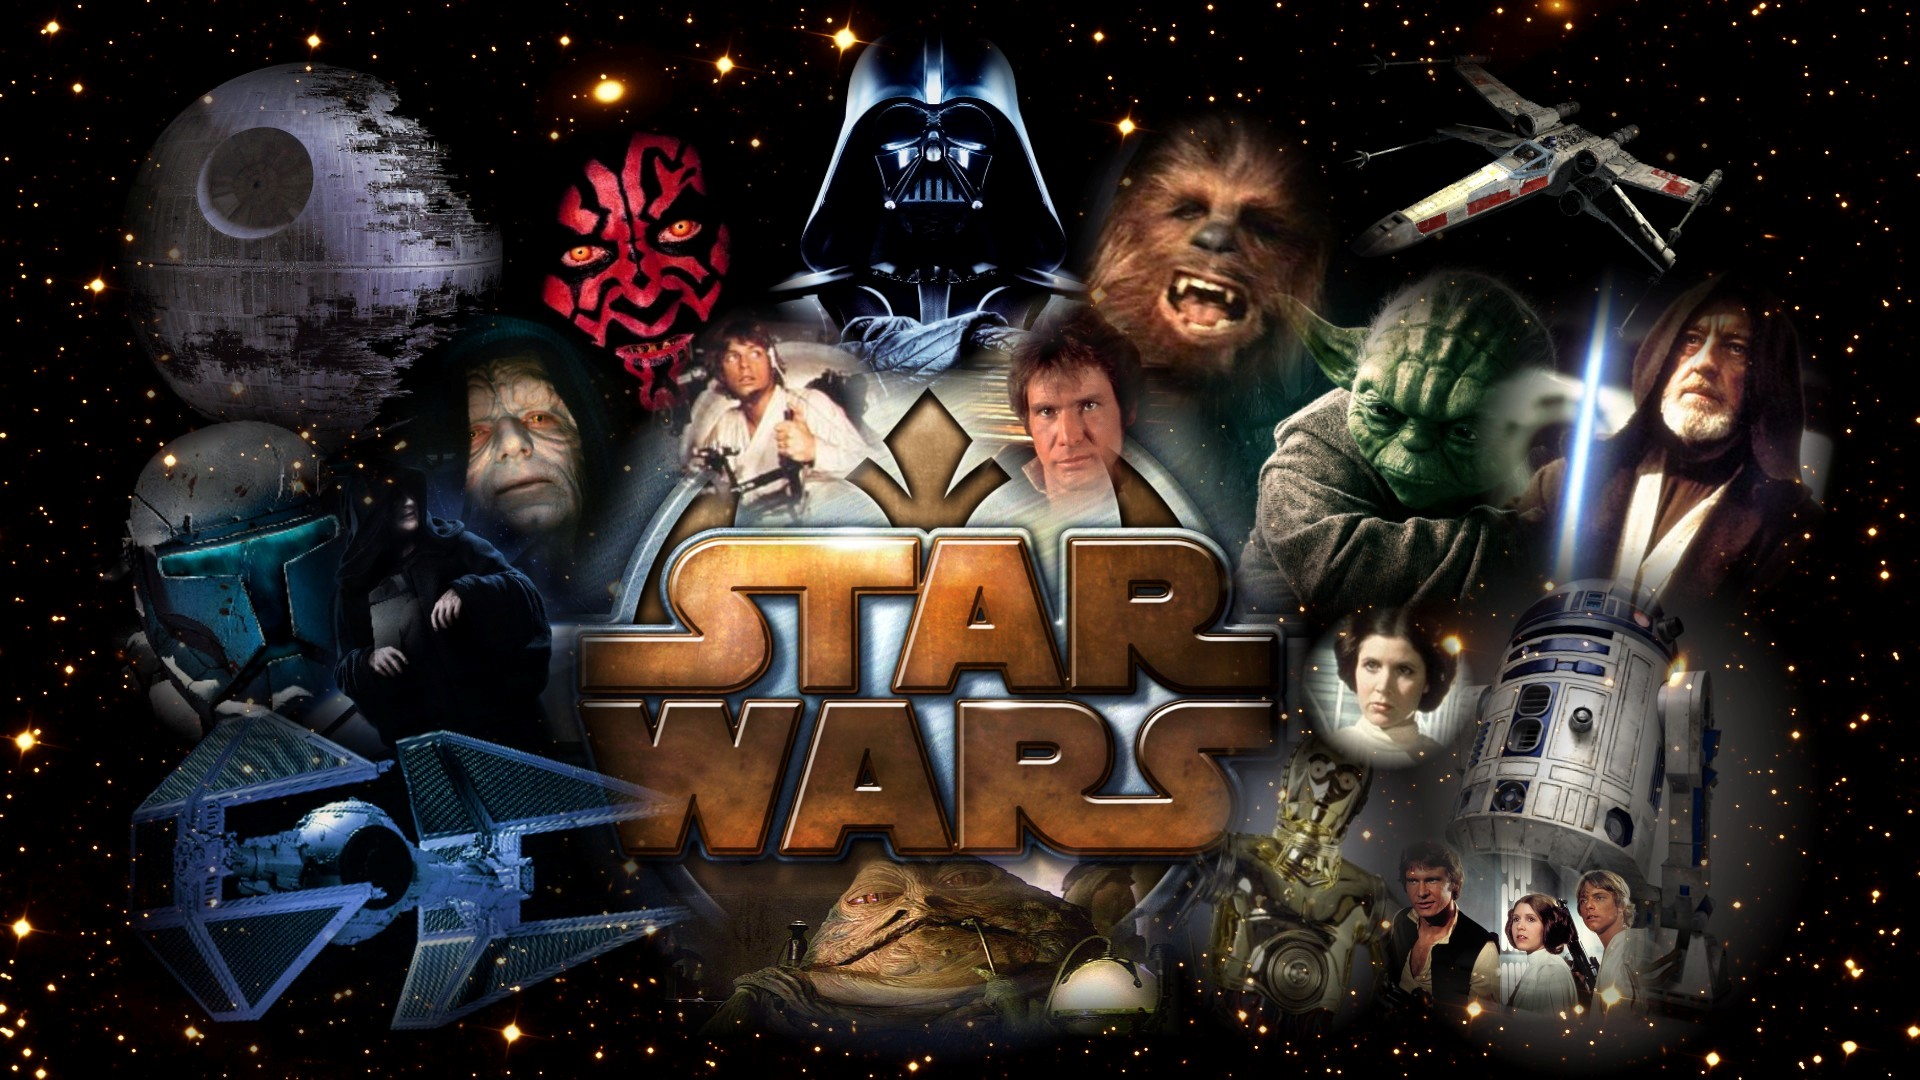 star wars wallpaper 12